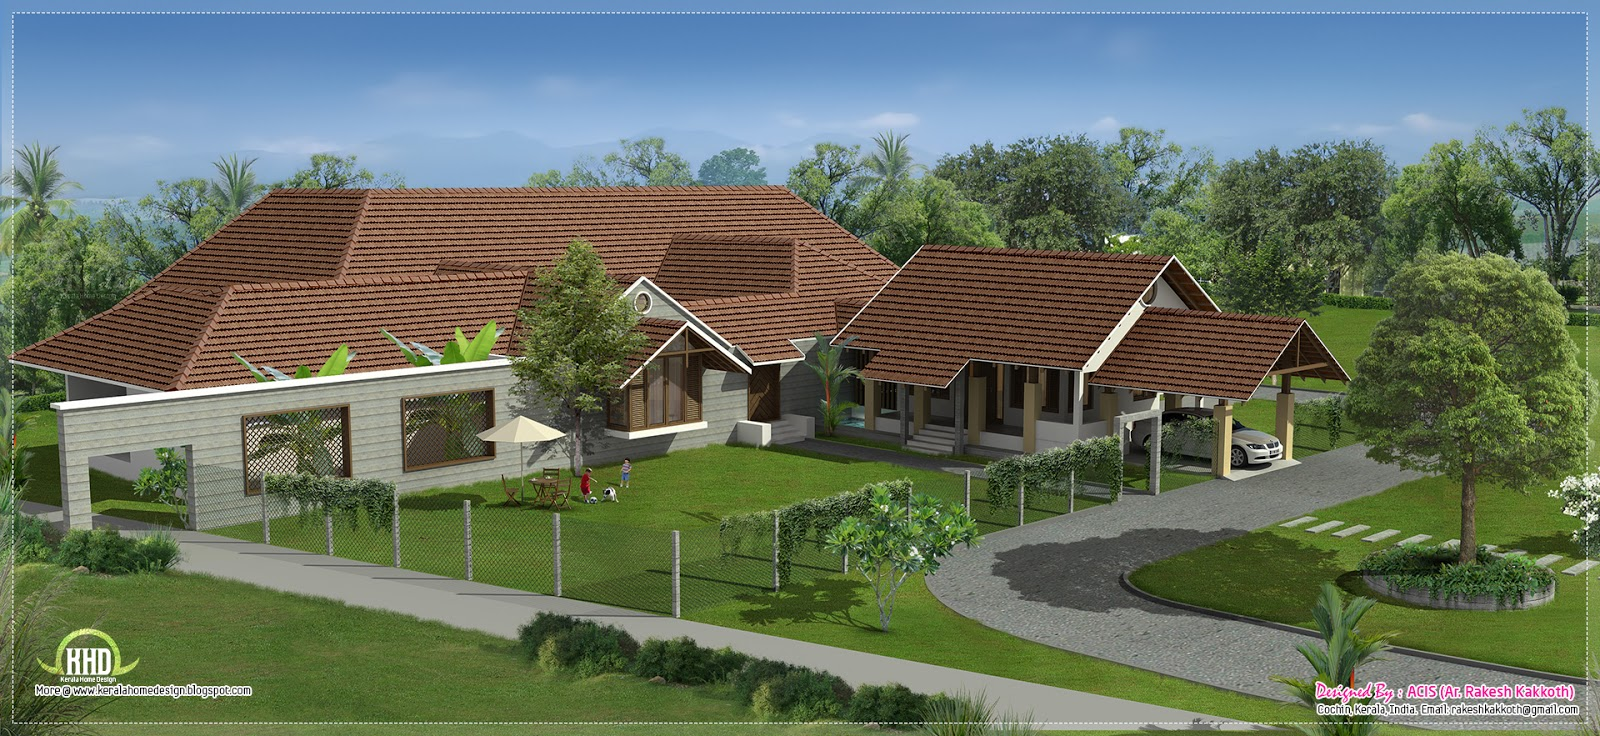 Luxury bungalow exterior design kerala home design for Home designs kerala architects